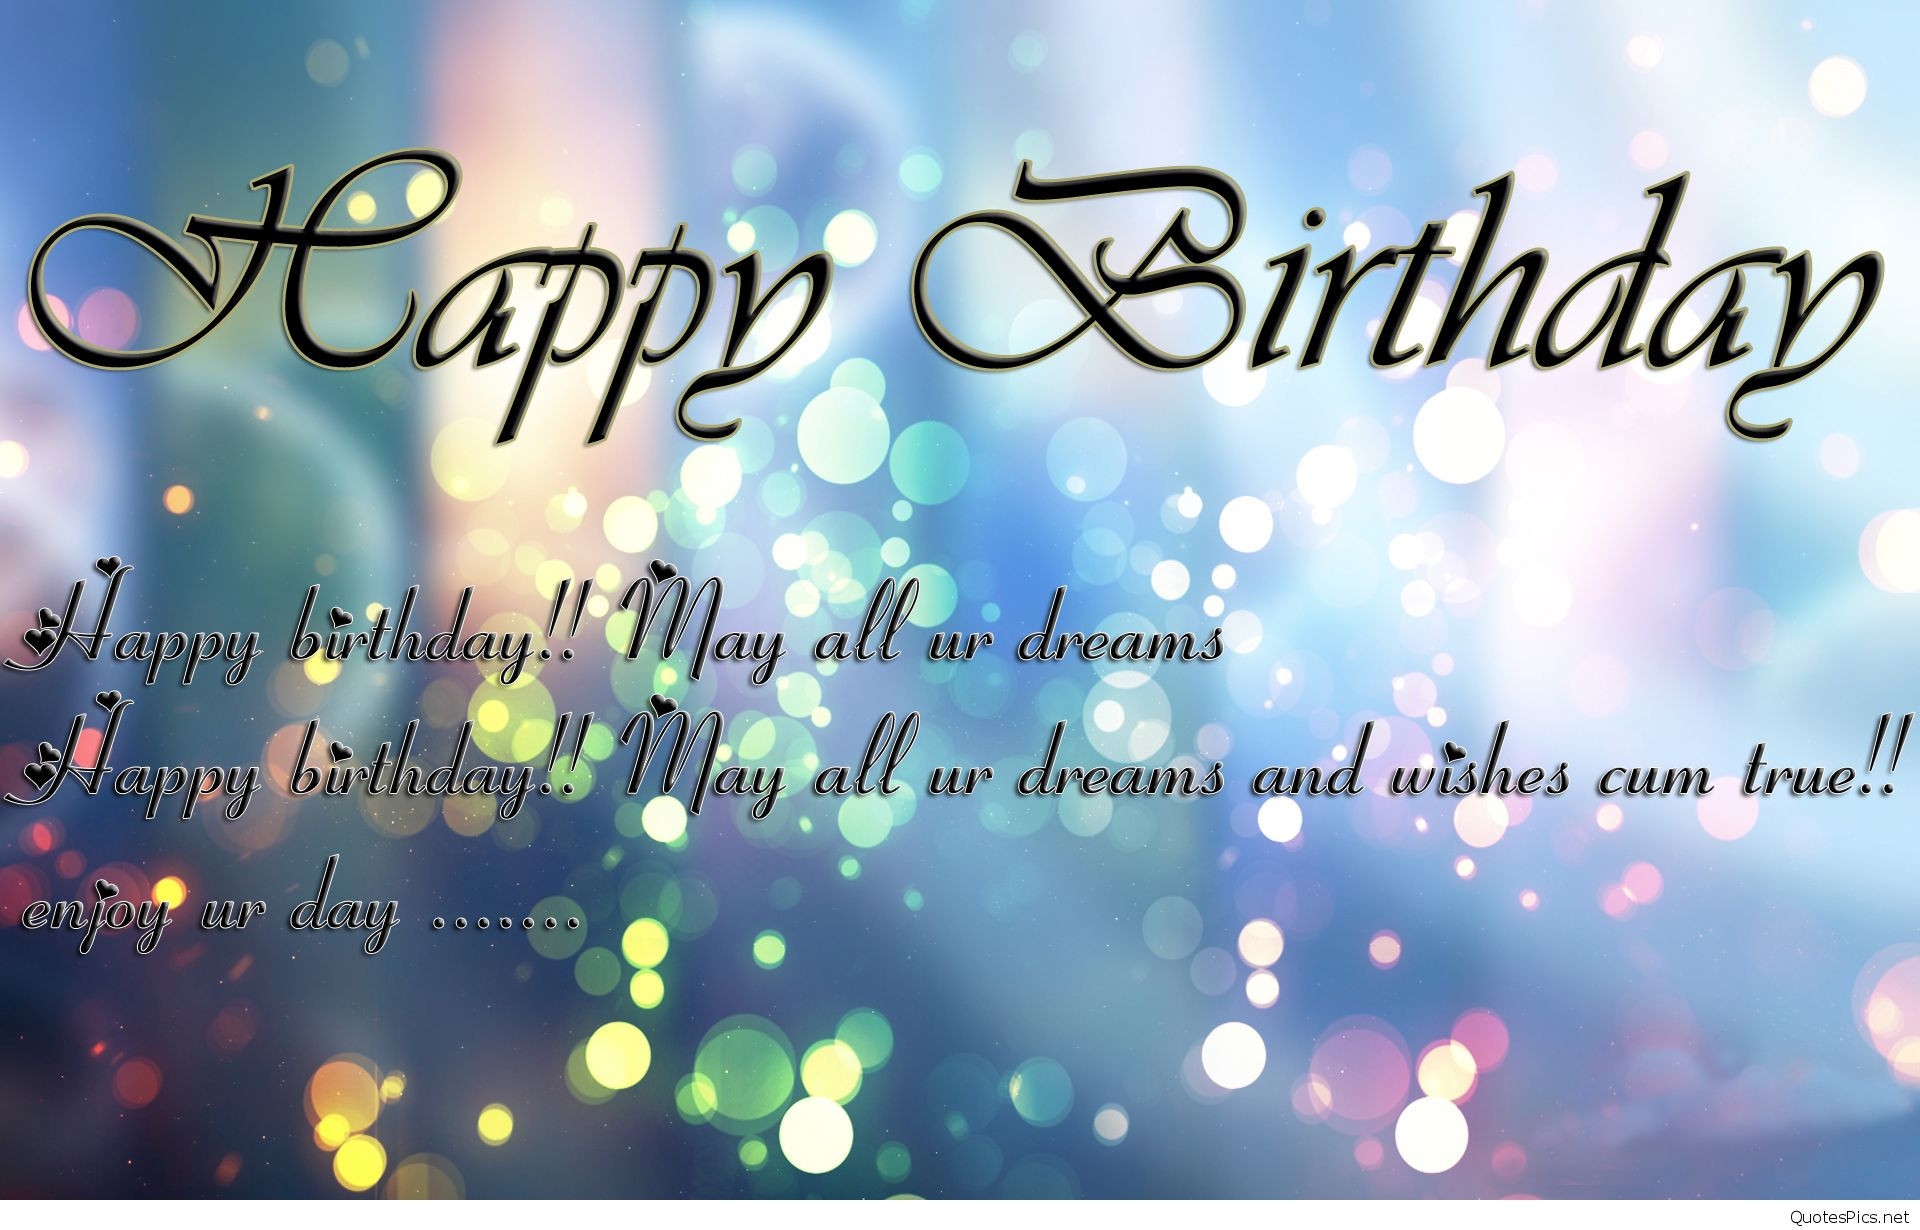 Best ideas about Happy Birthday Image Quotes . Save or Pin Amazing birthday wishes cards and wallpapers hd Now.